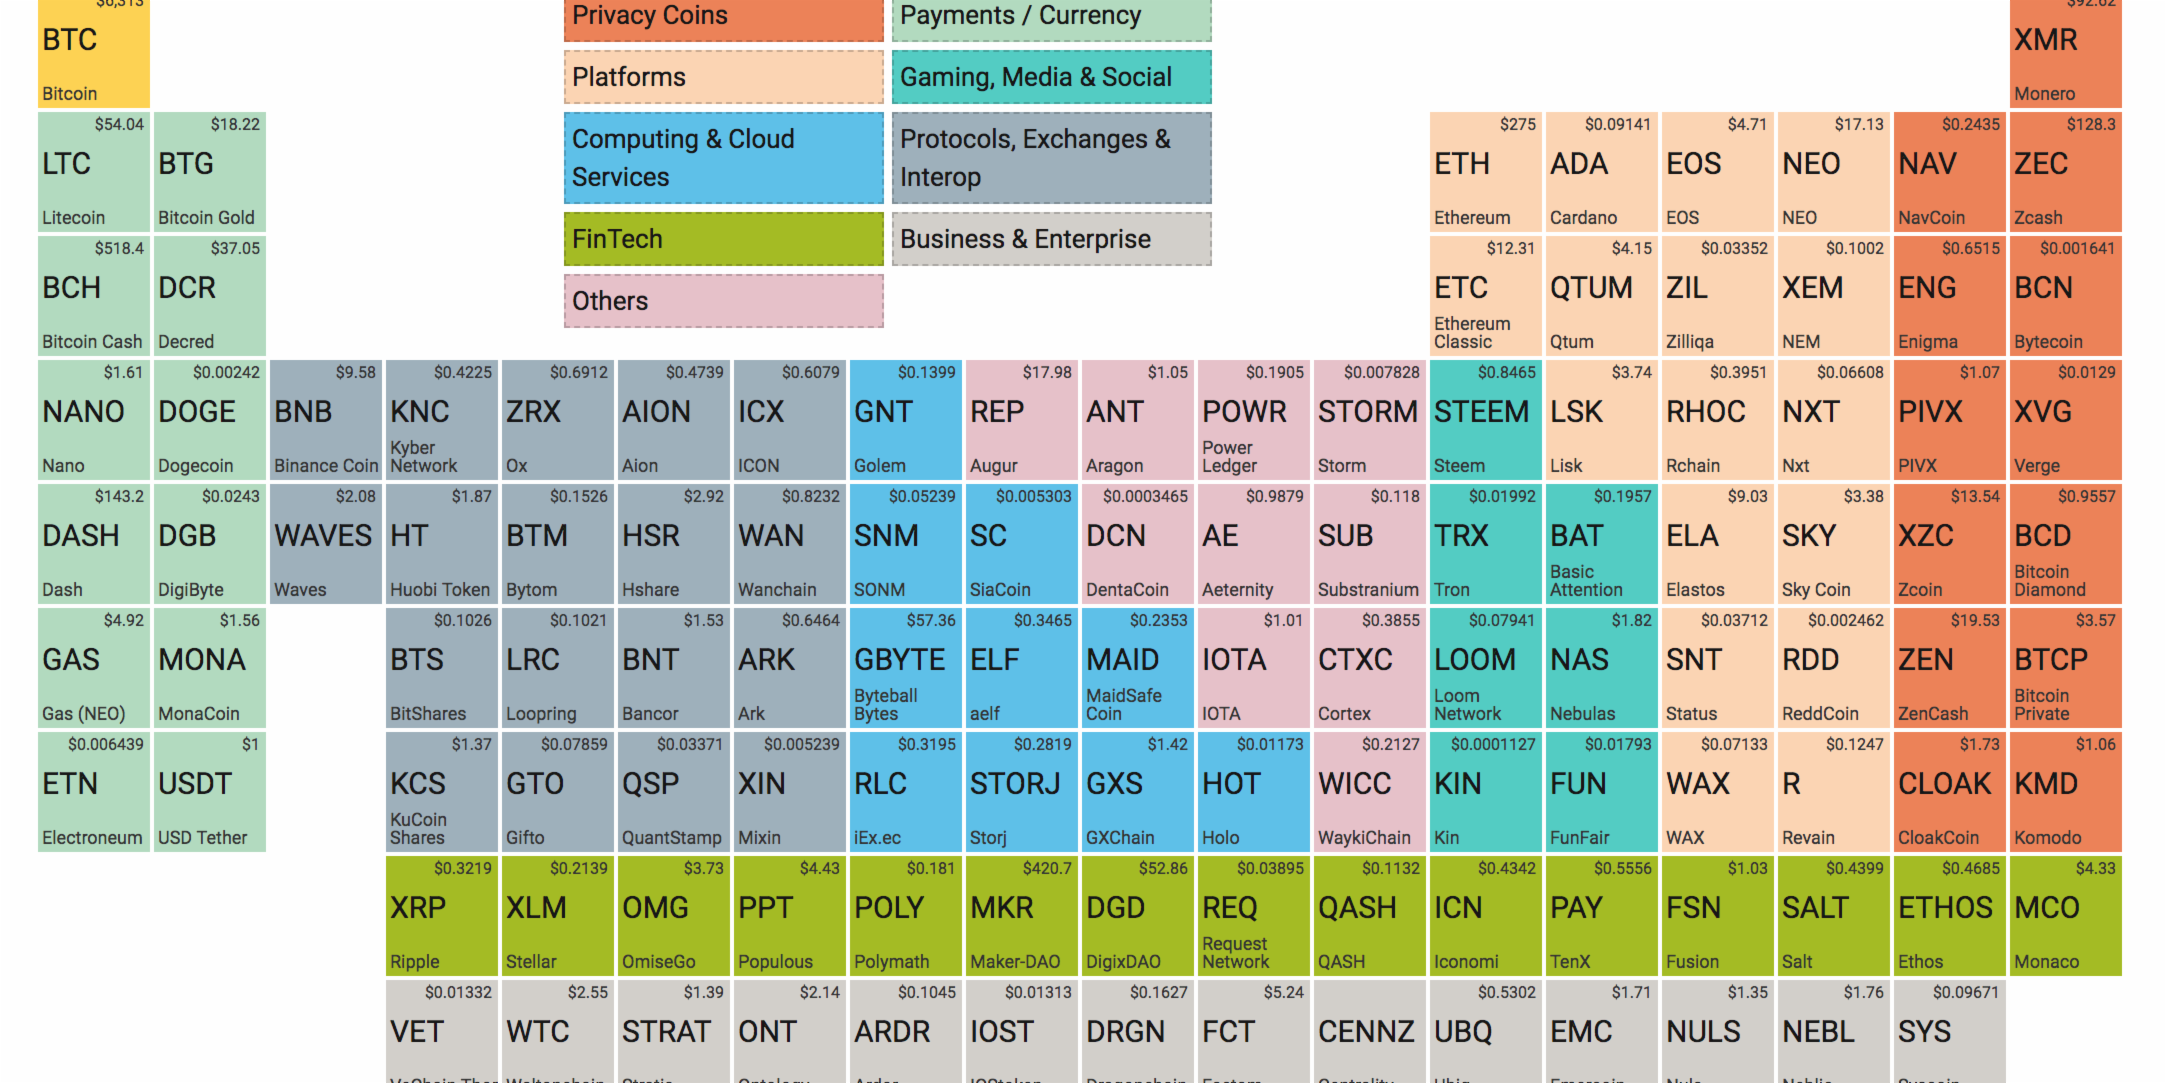 The periodic table of cryptocurrencies